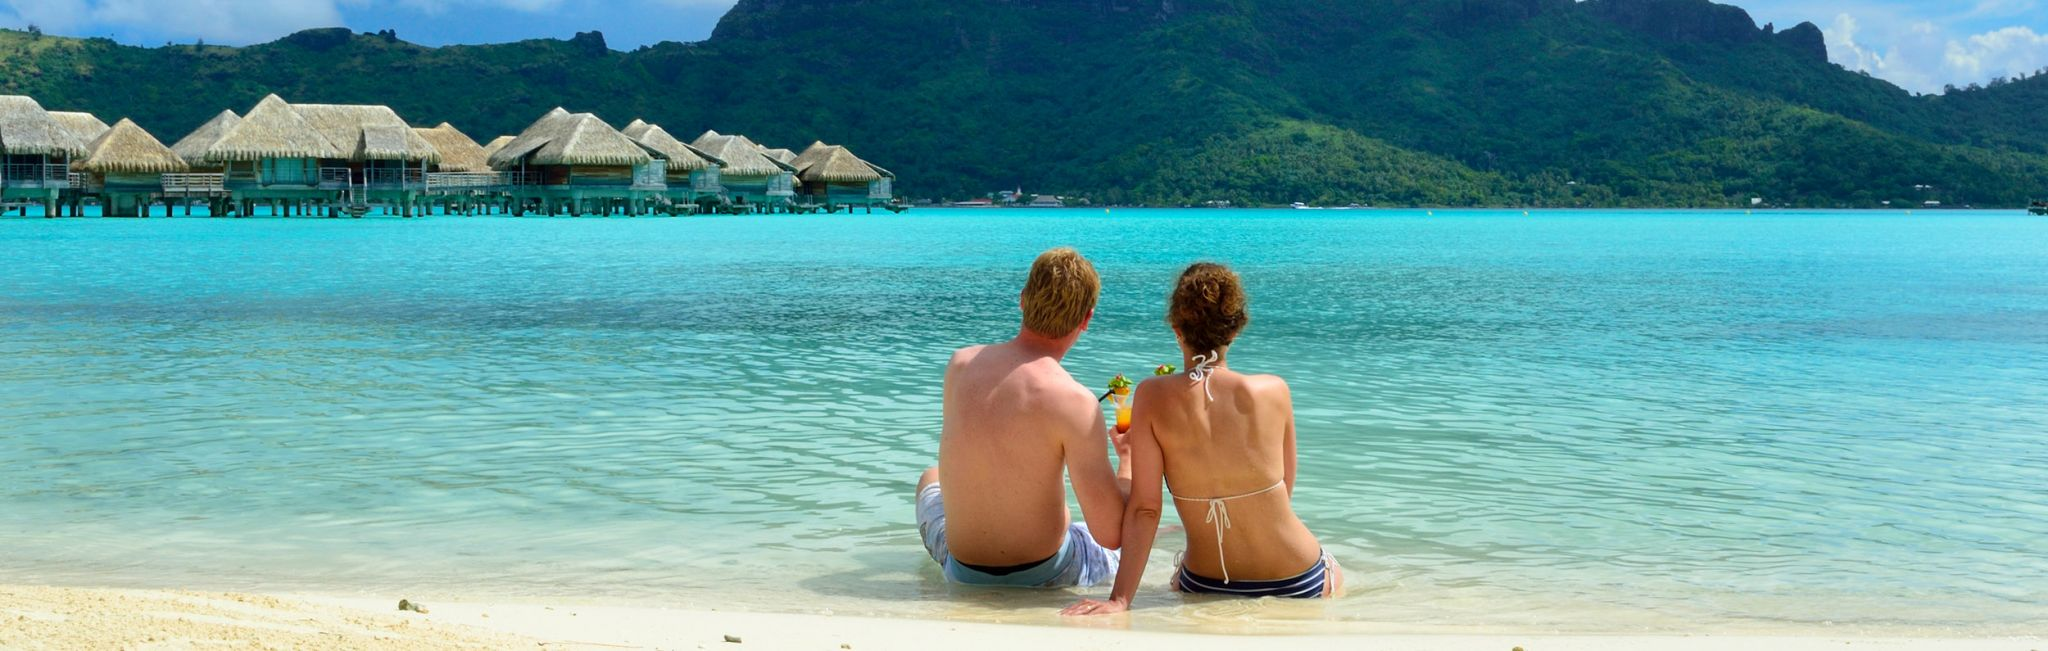 A couple relaxes on a beach in Bora Bora, Tahiti.